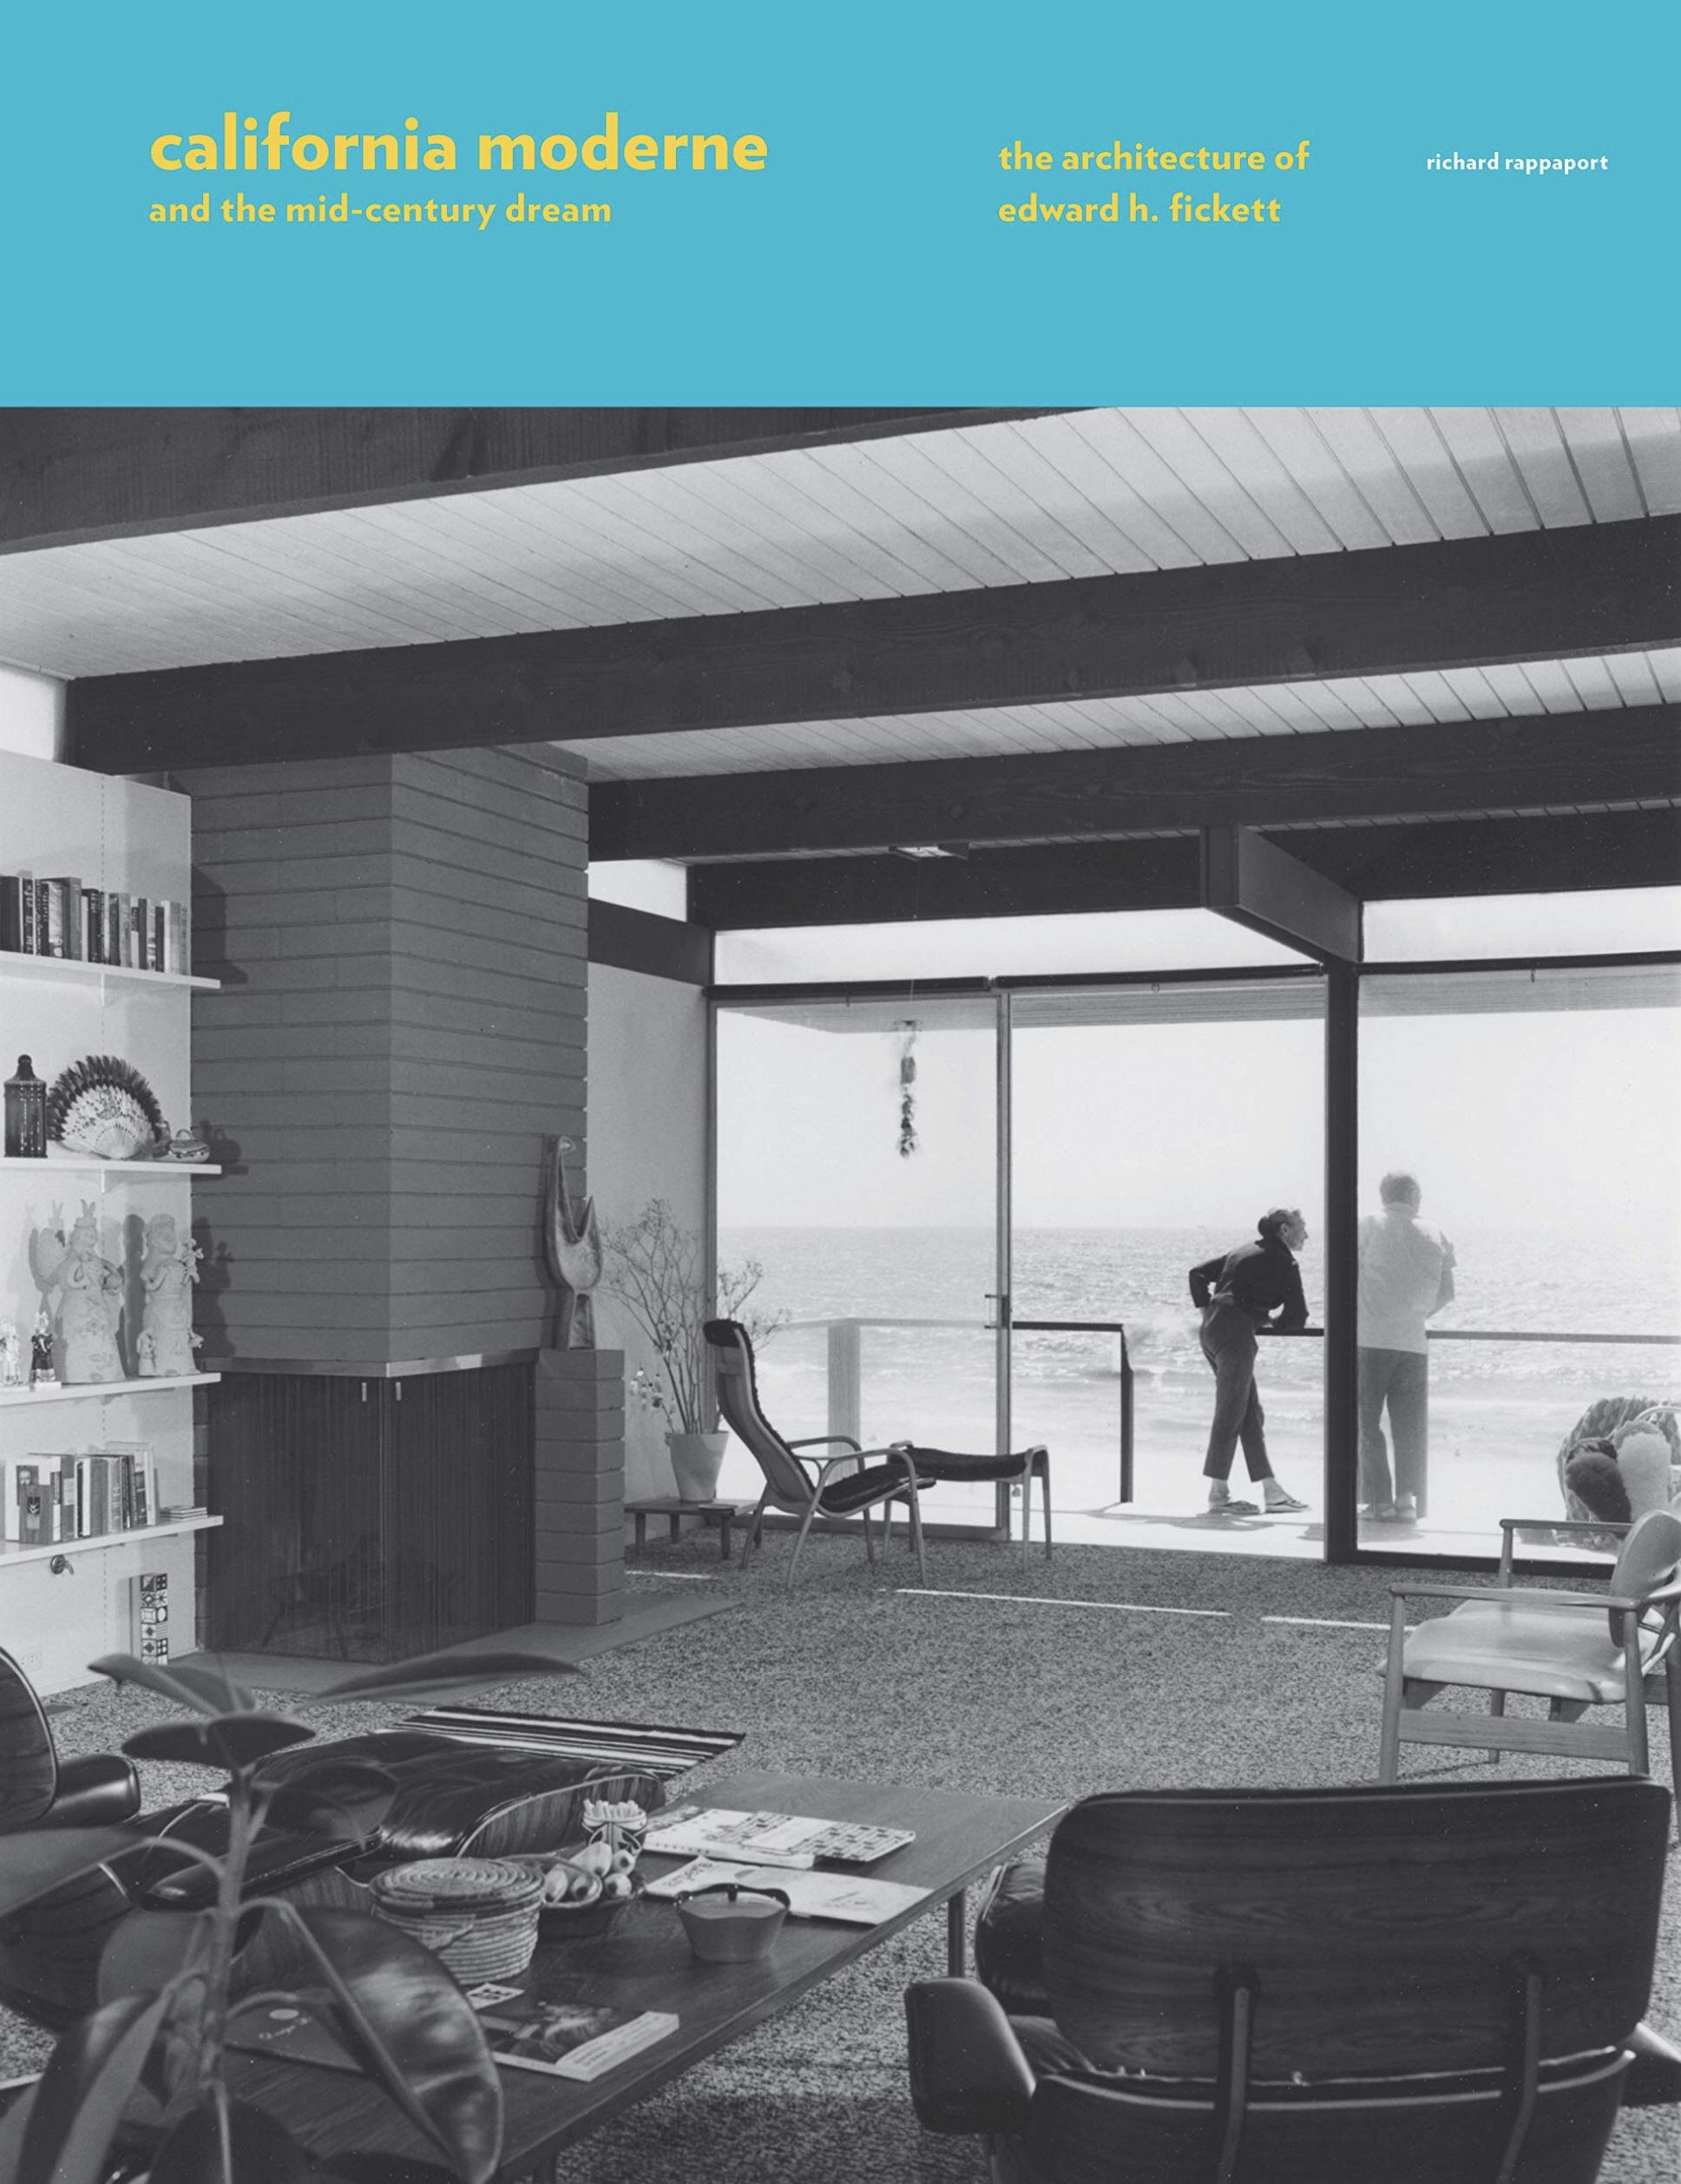 California Moderne and the Mid-Century Dream, The Arcitecture of Edward H. Fickett; Richard Rappaport; Rizzoli.